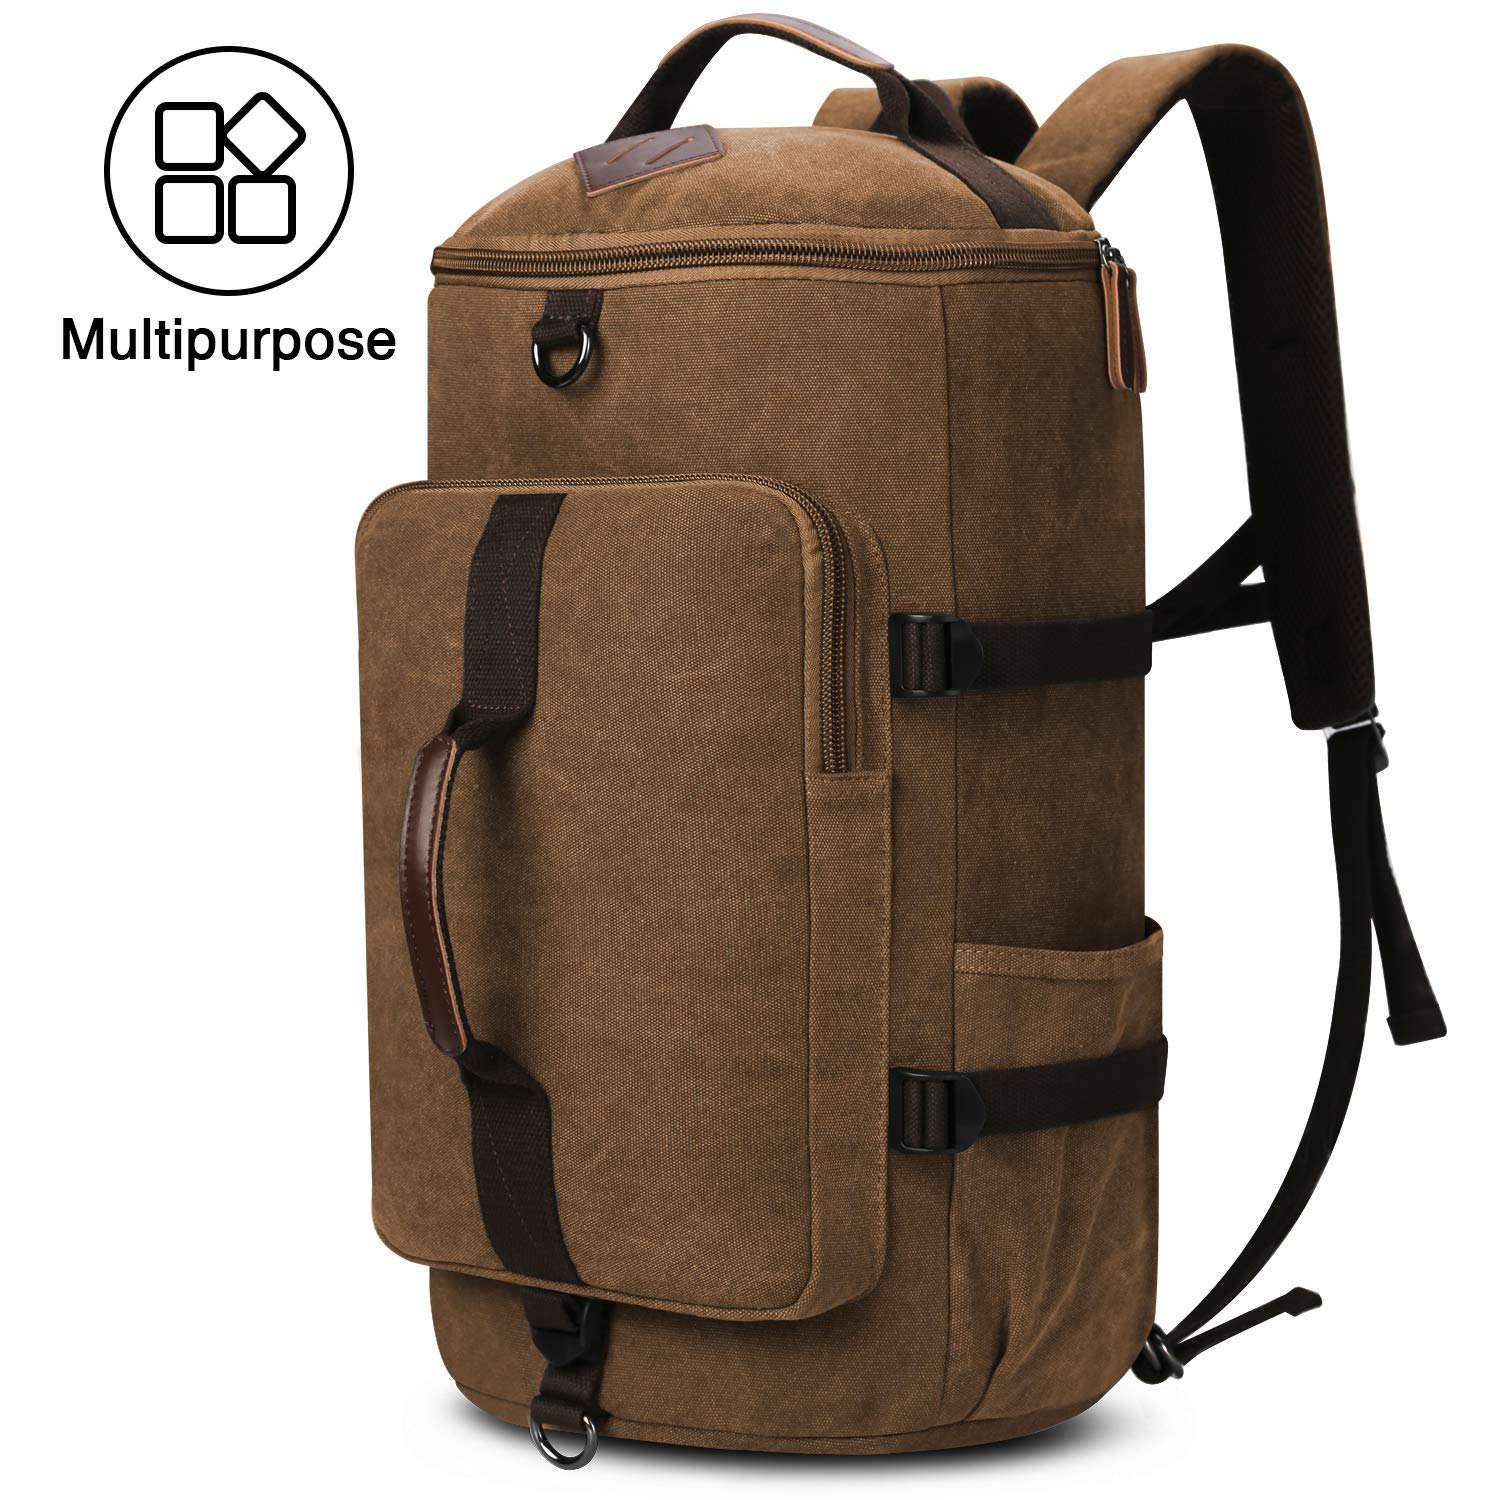 Travel Backpack, Yousu Large Canvas Backpack Vintage Travel Duffel Bags Classic Casual Daypack Duffle Bookbag for Men 3-In-1 Coffee